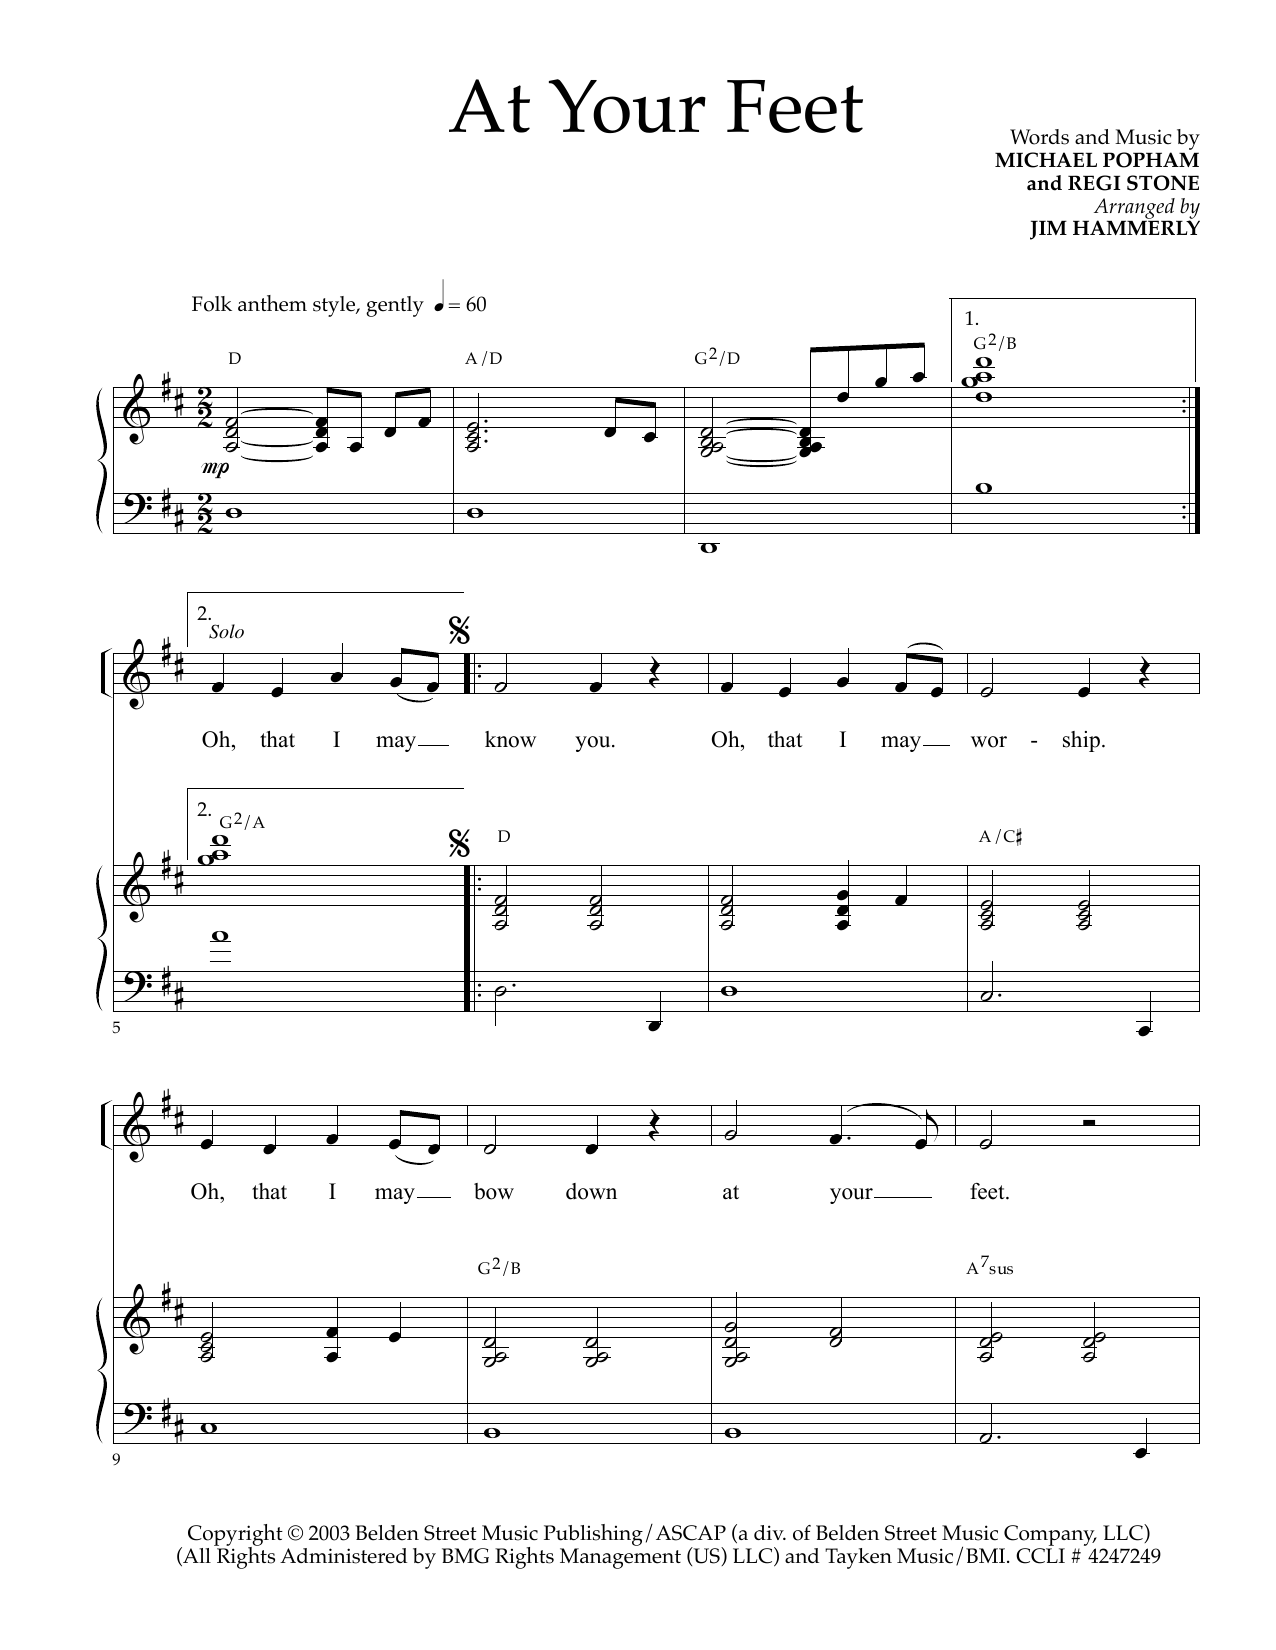 At Your Feet Sheet Music